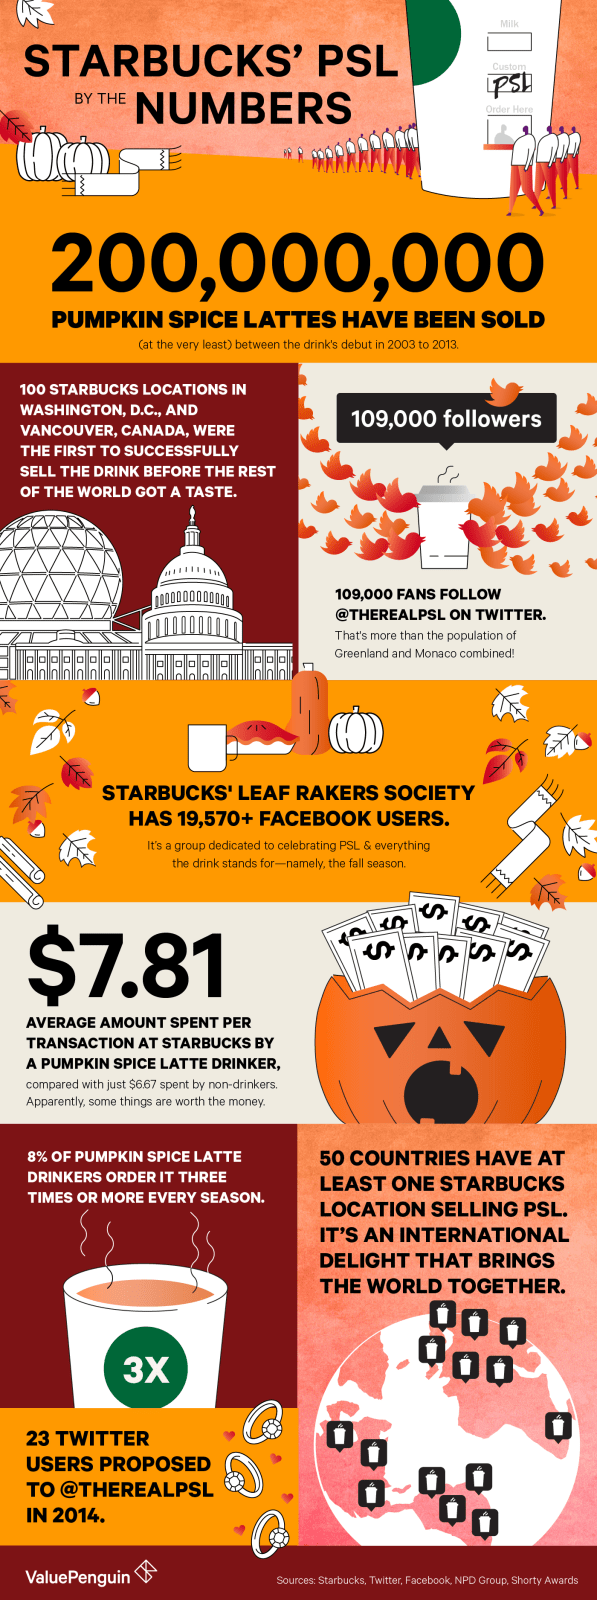 How starbucks got us all to fall in love with psl valuepenguin infographic of psl by the numbers reheart Image collections